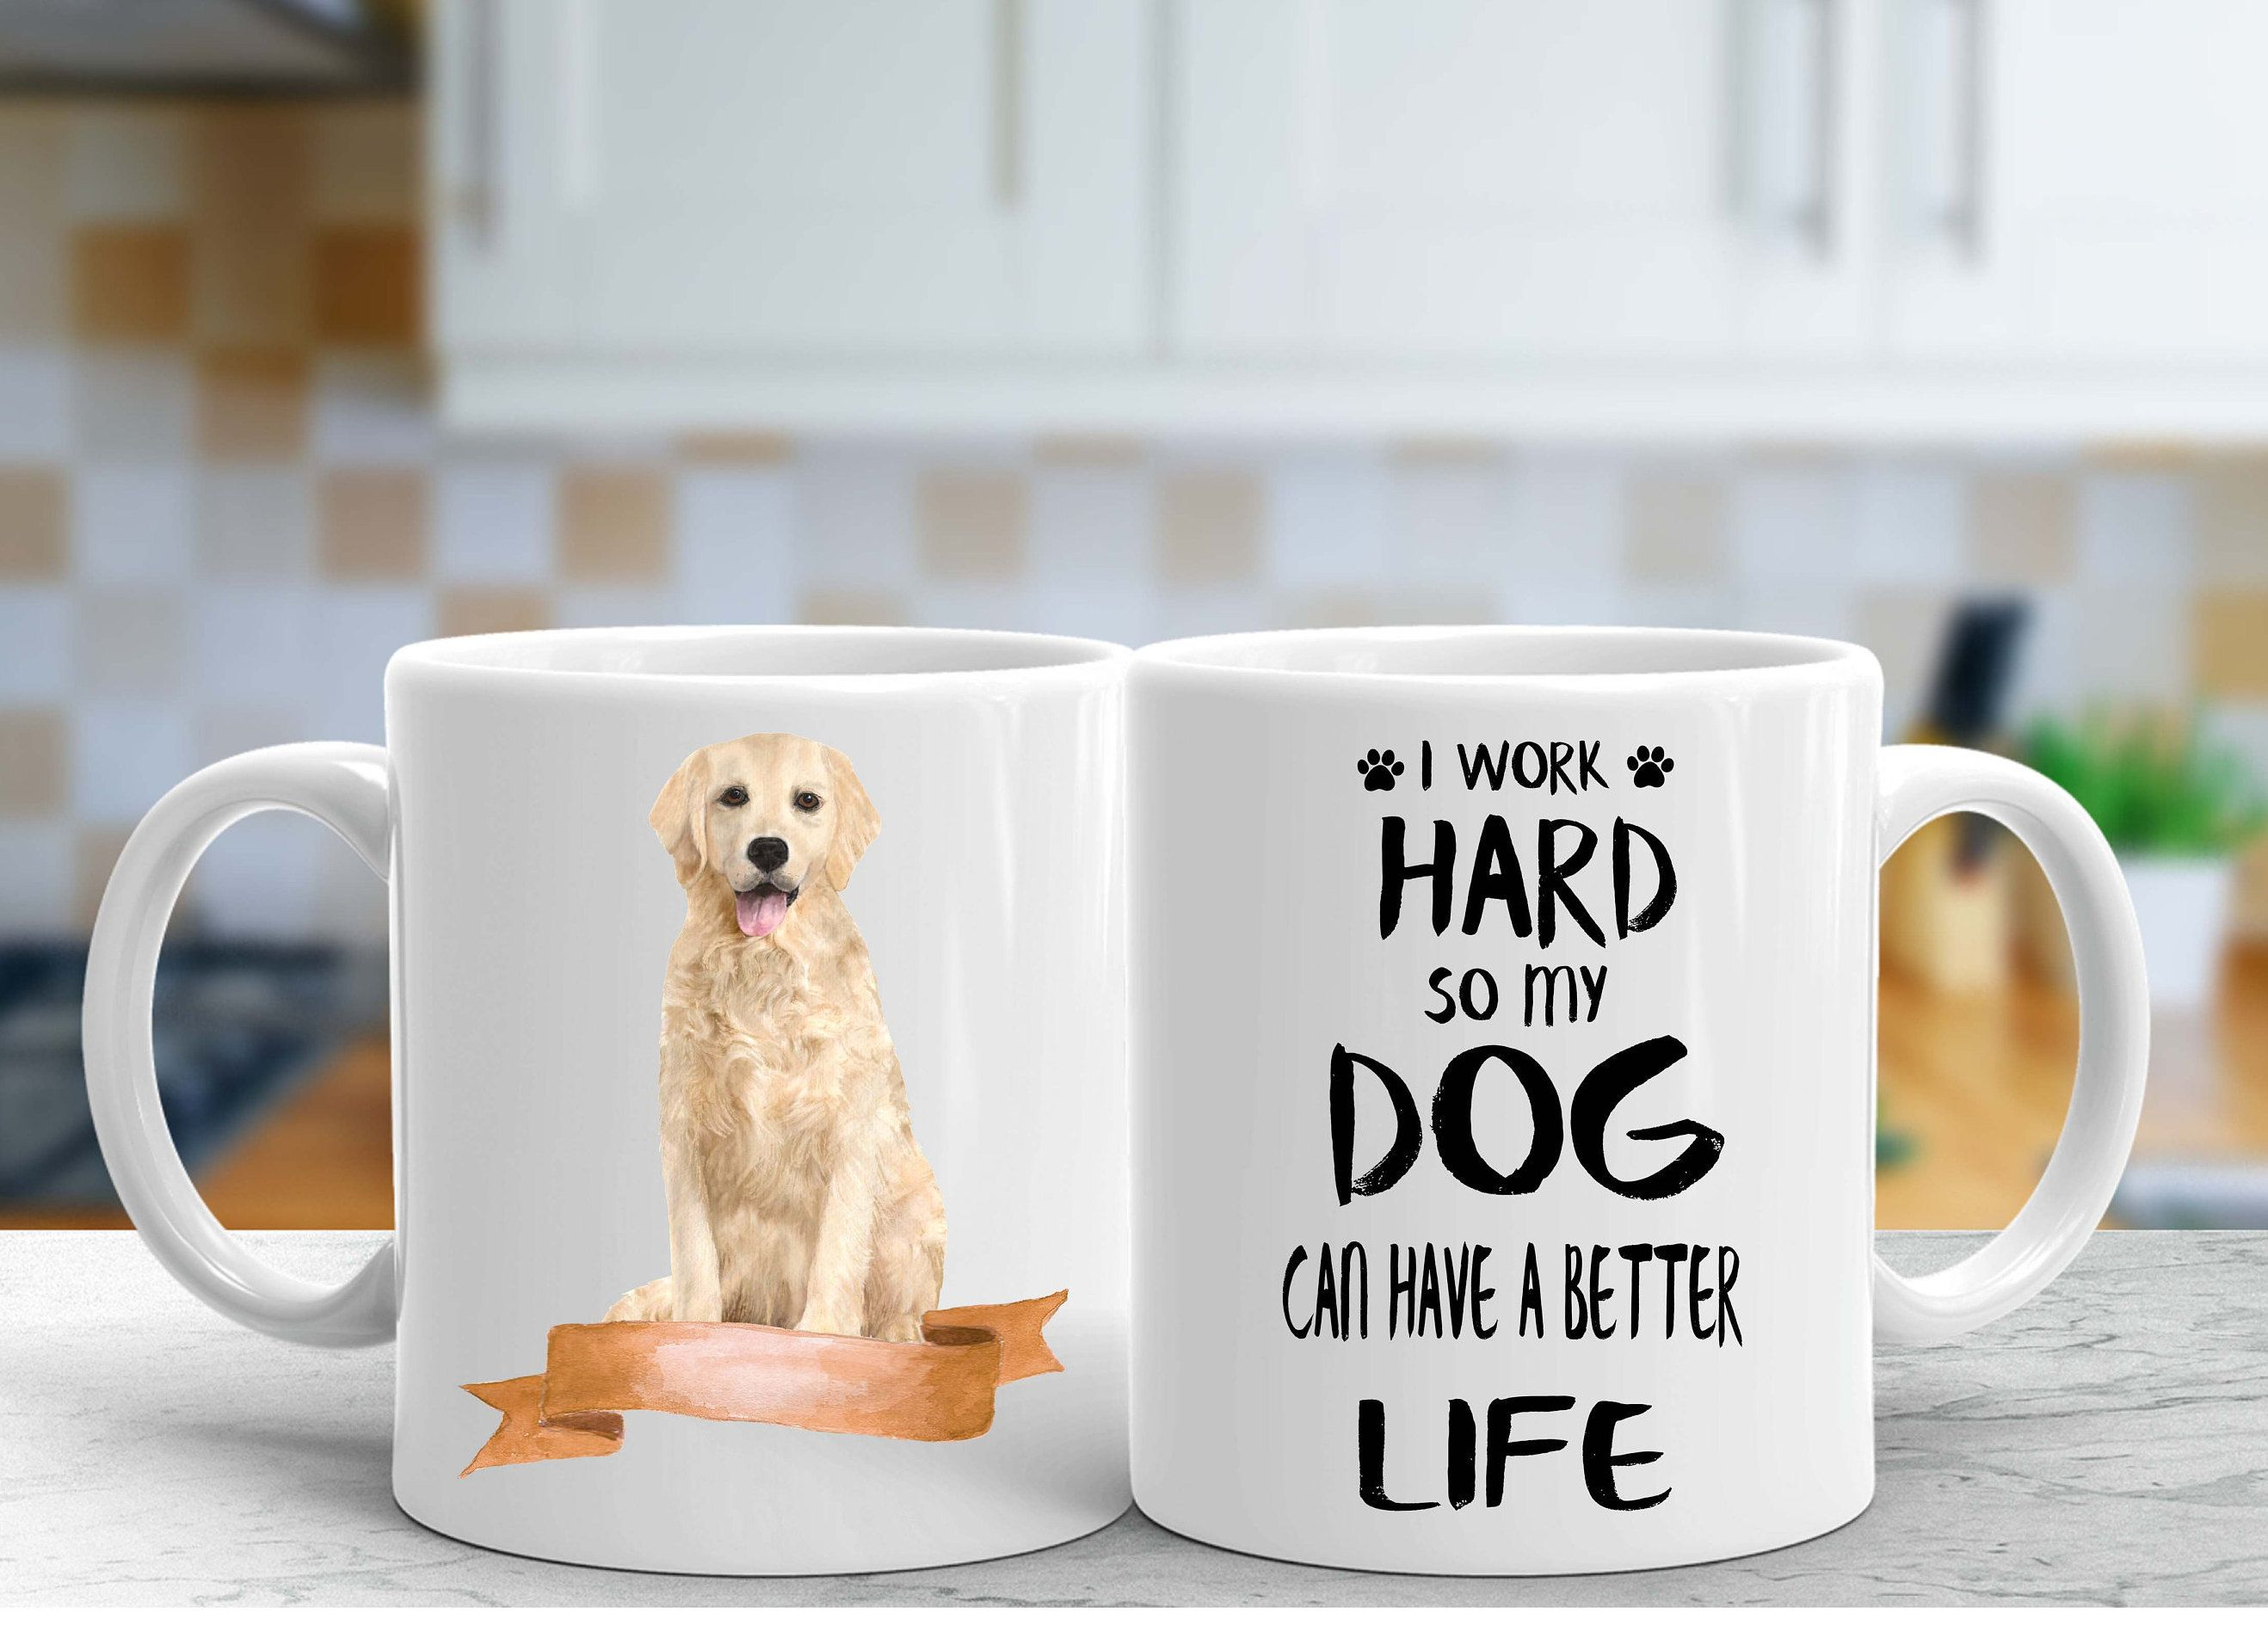 golden retriever custom mug dogs lovers custom gifts dogs breeders custom mugs Mug